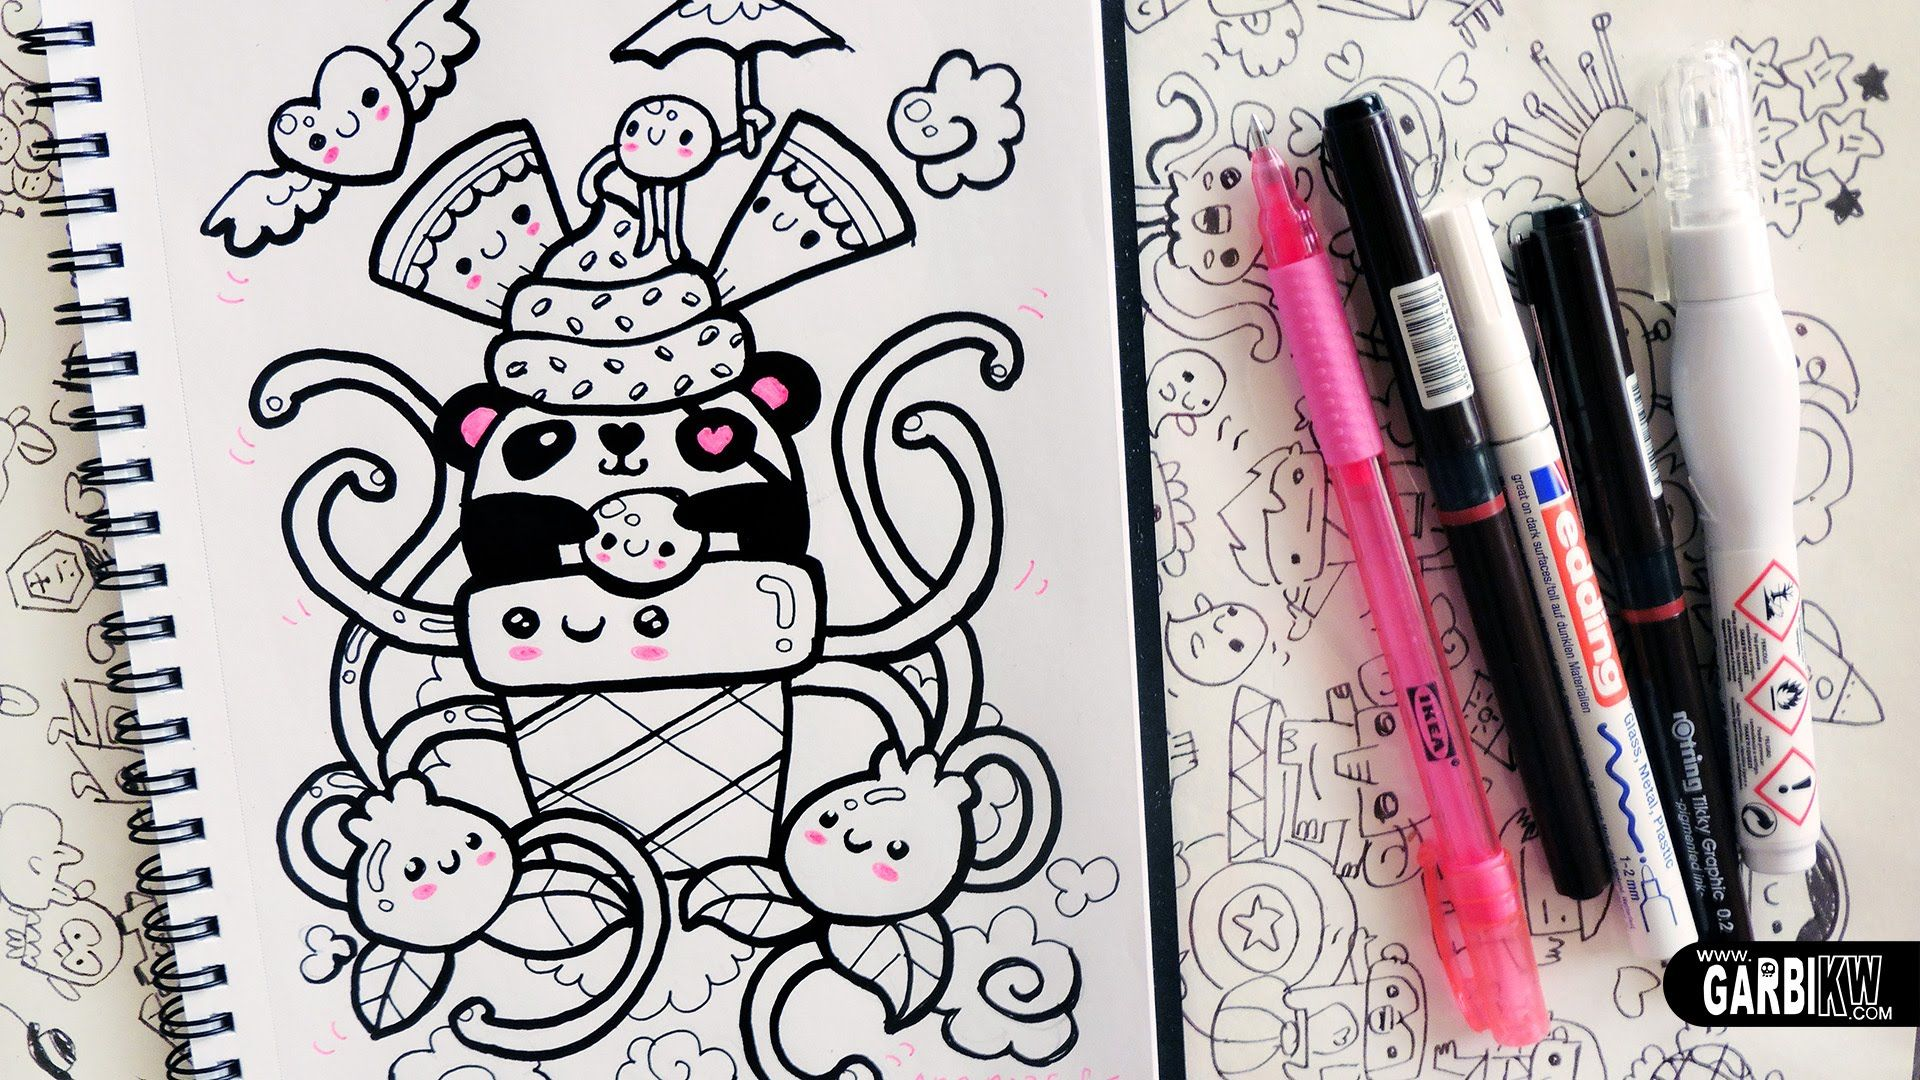 kawaii panda ice cream hello doodles easy drawings by garbi kw